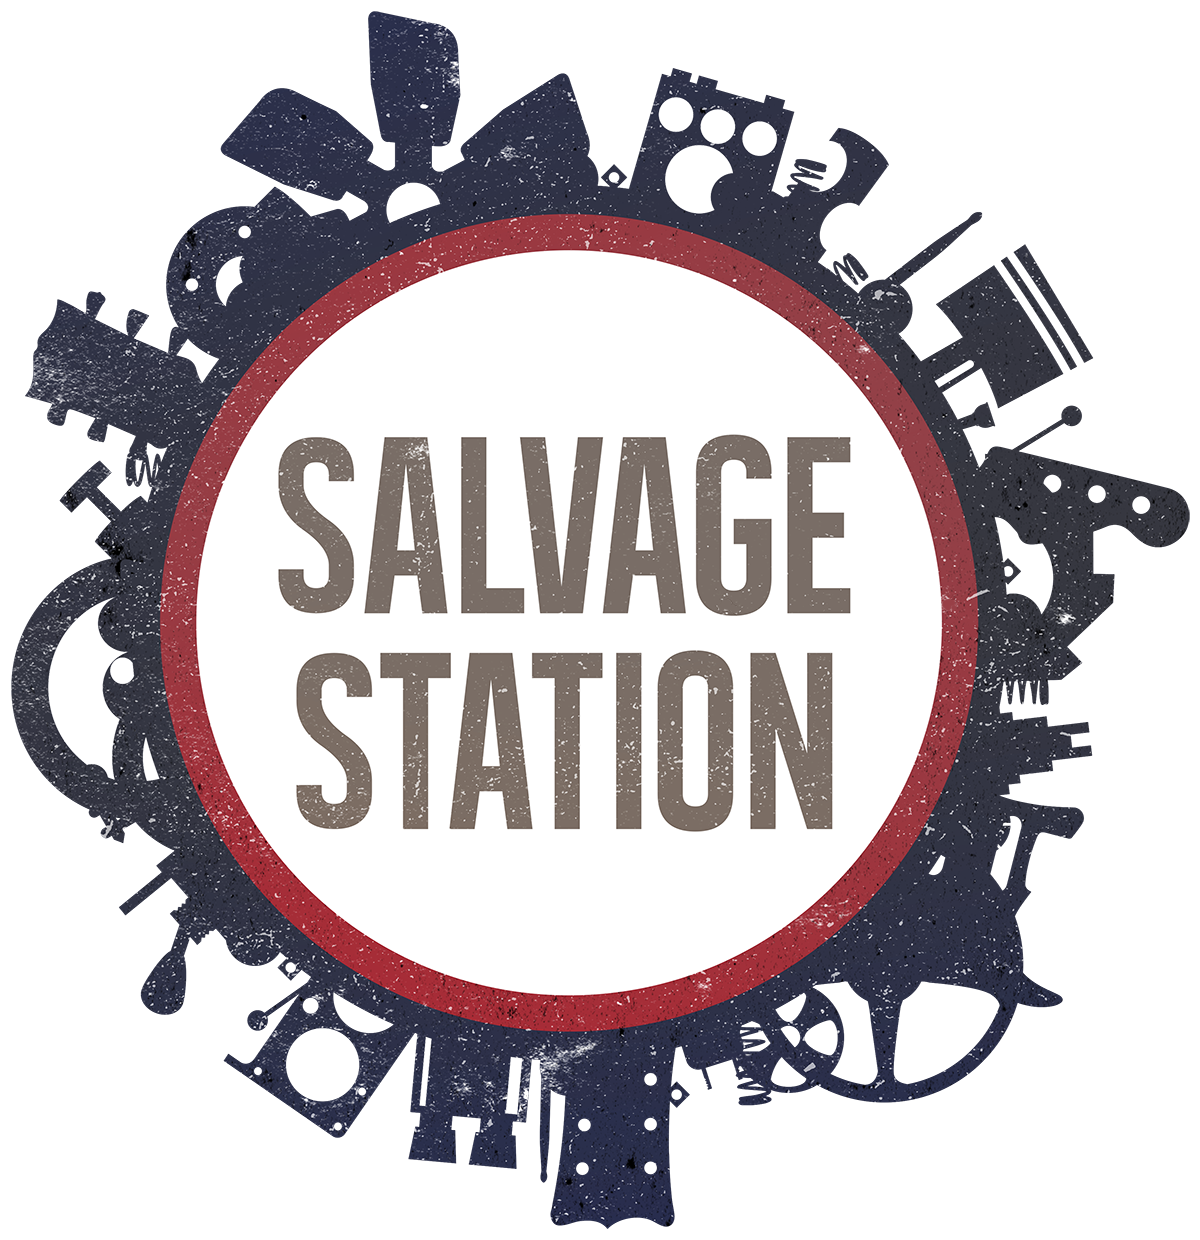 Earth Day Location - Salvage Station